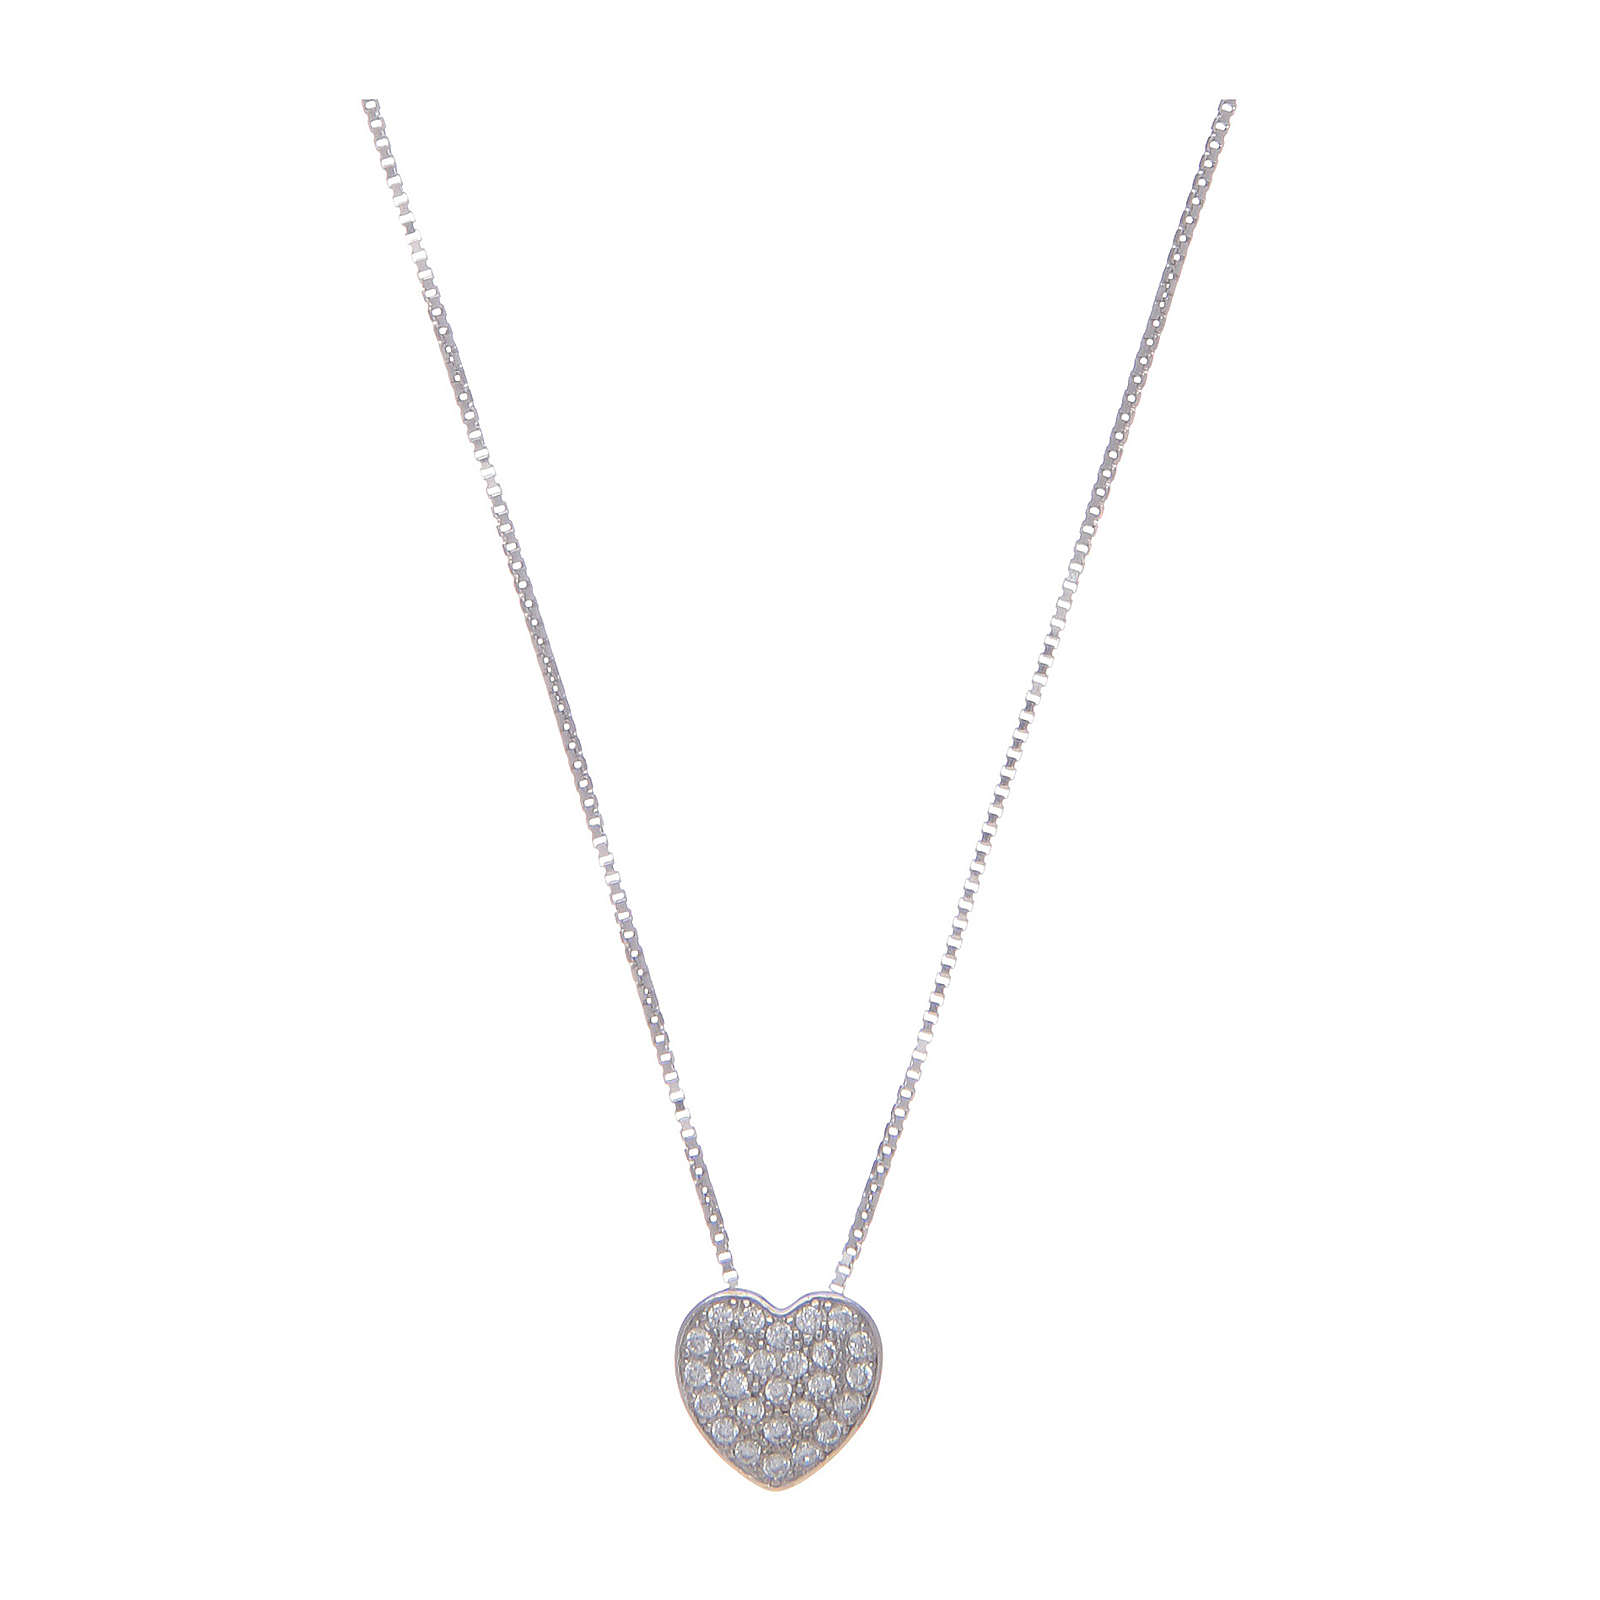 Amen necklace in 925 sterling silver with heart and zircons 4